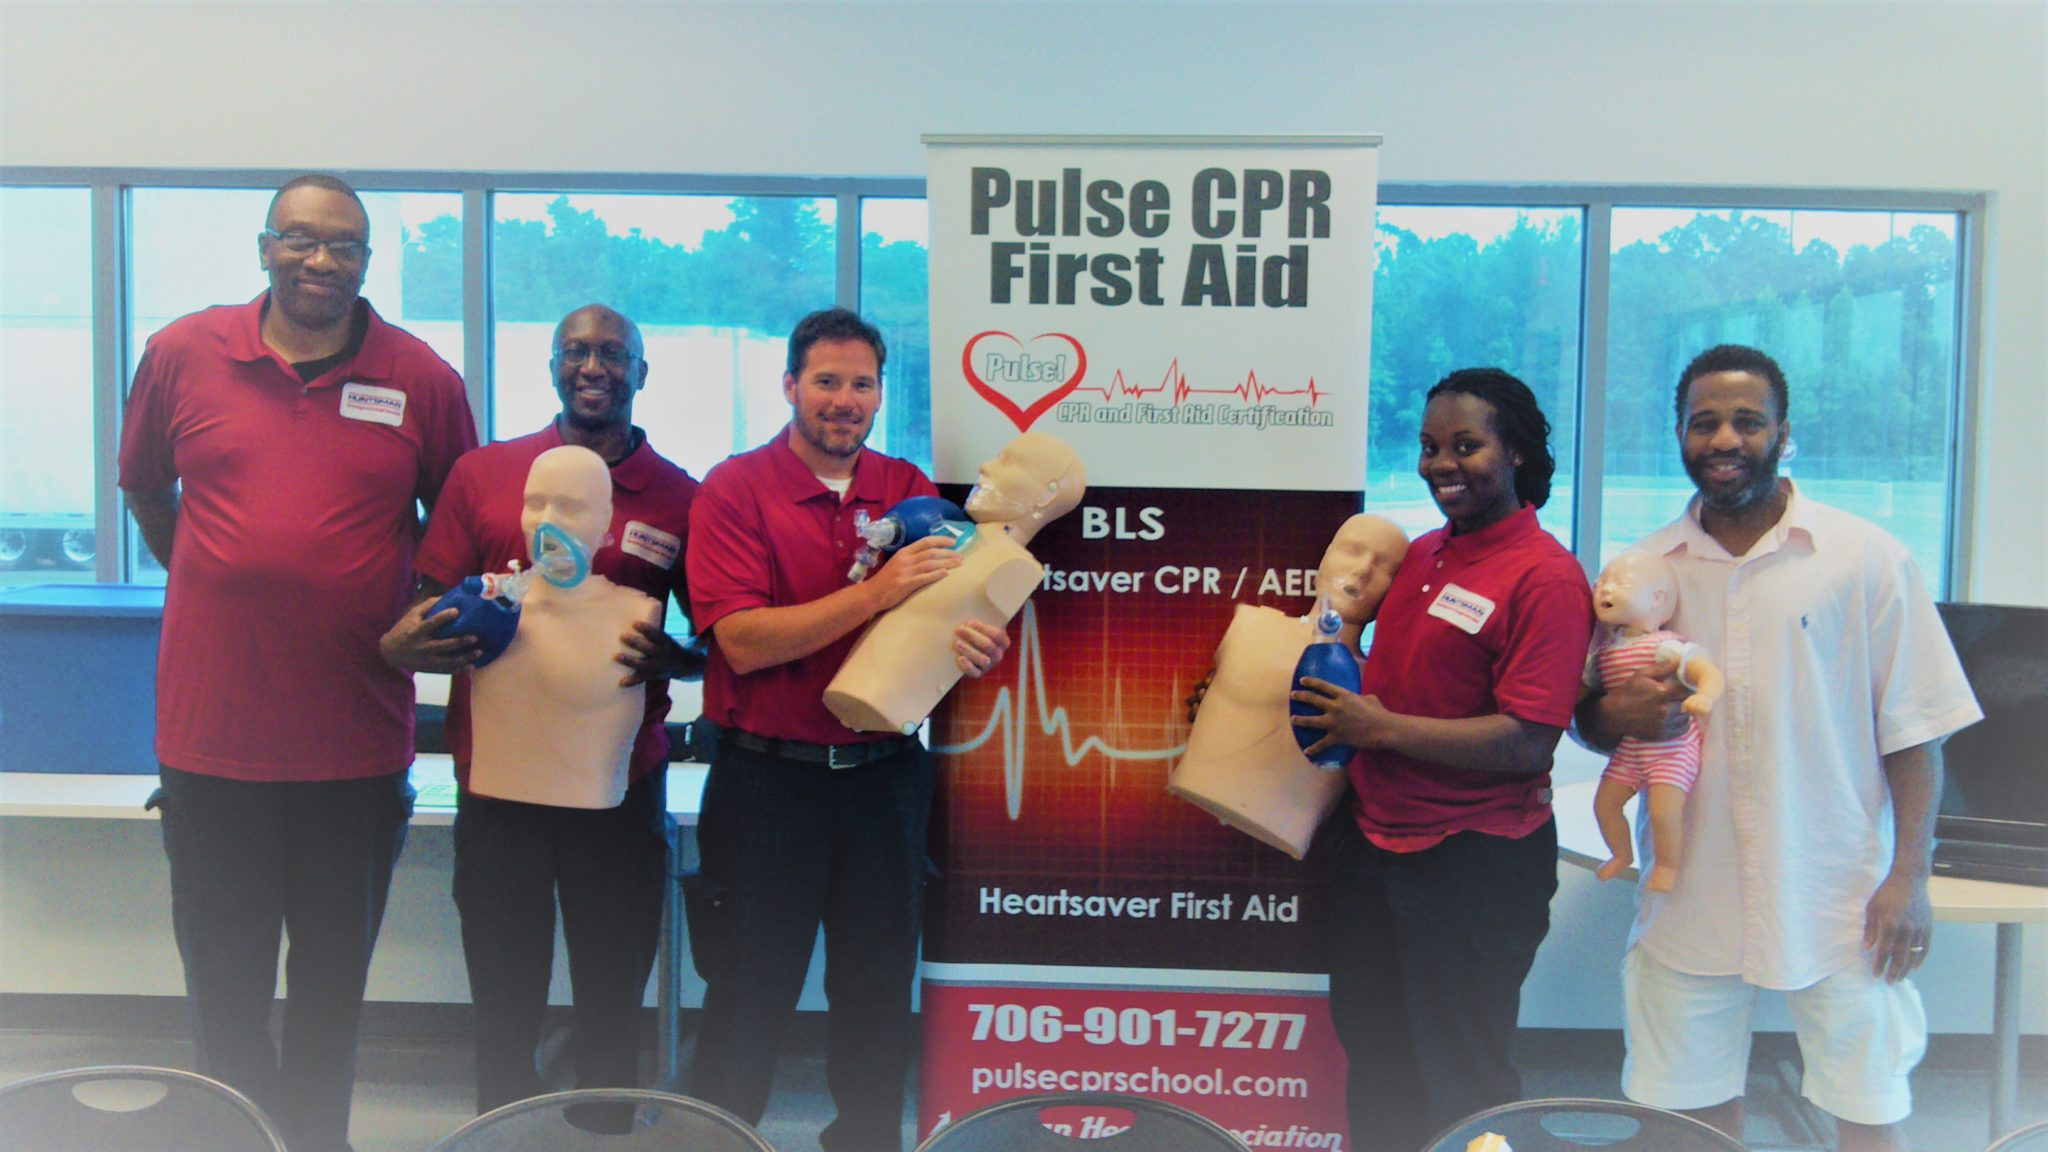 Corporate CPR Training and Why Is It So Important?